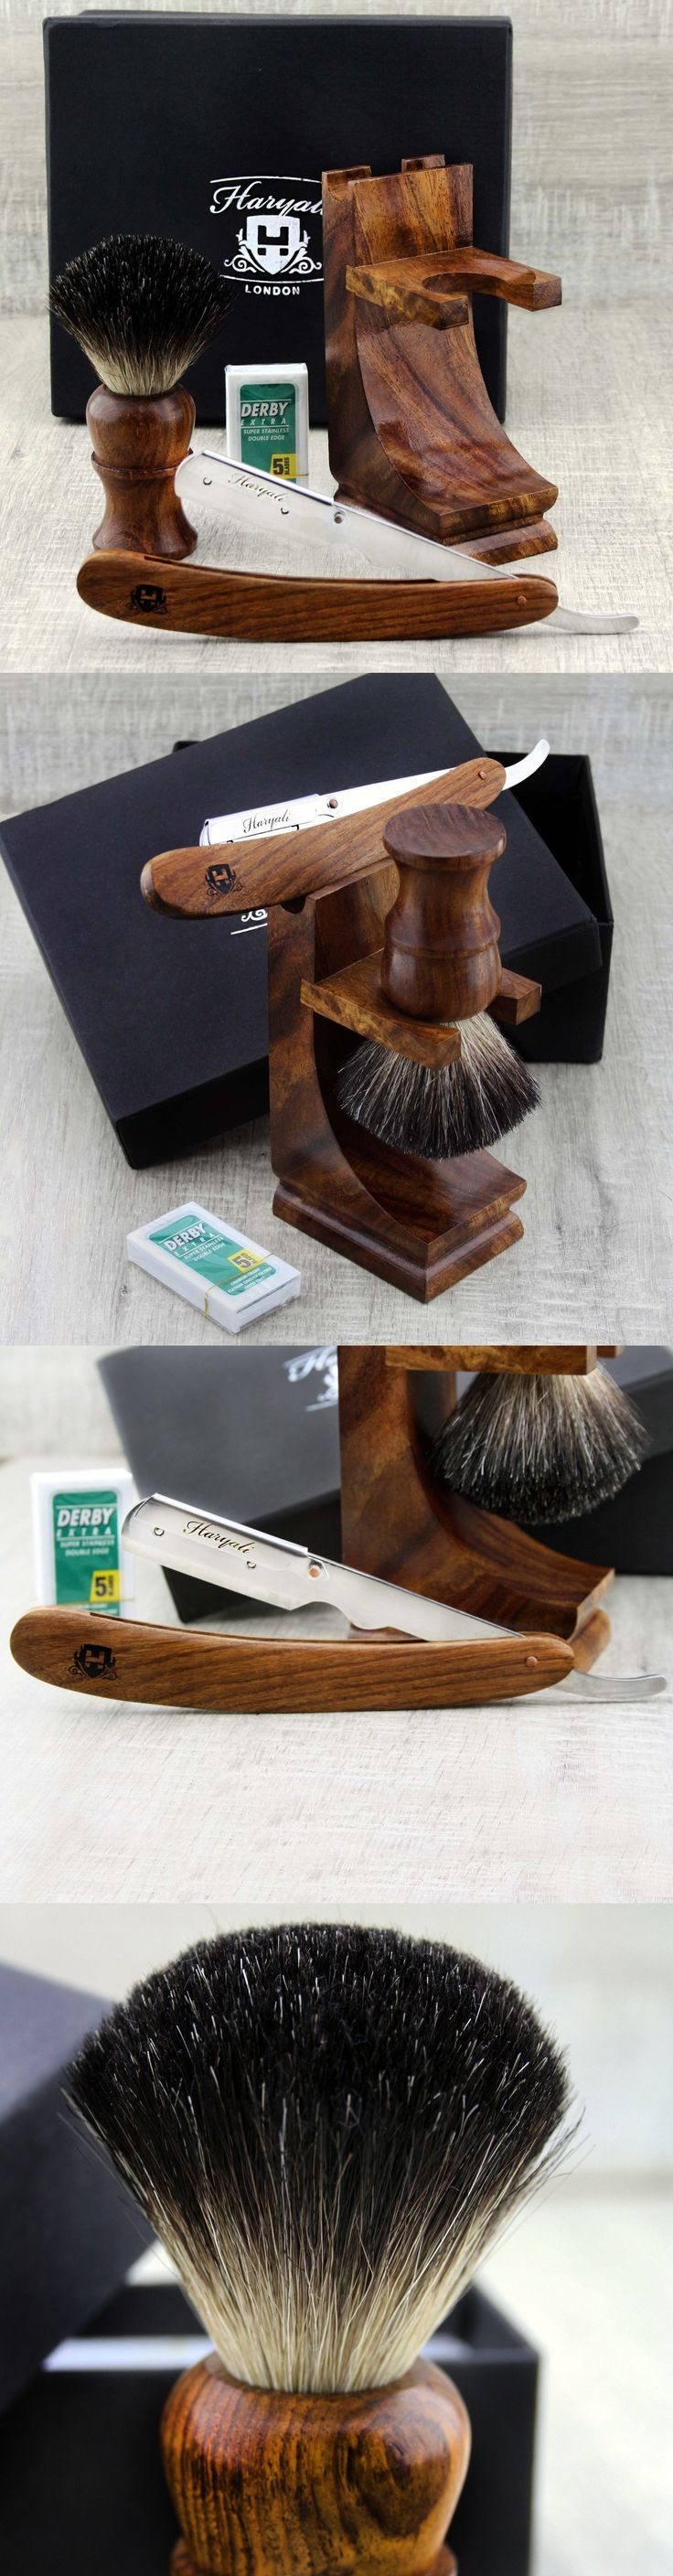 Shaving and Grooming Kits and Sets: Class Wooden Shaving Set For Mens With Black Badger Hair Brush And Shavatte Razor BUY IT NOW ONLY: $44.98